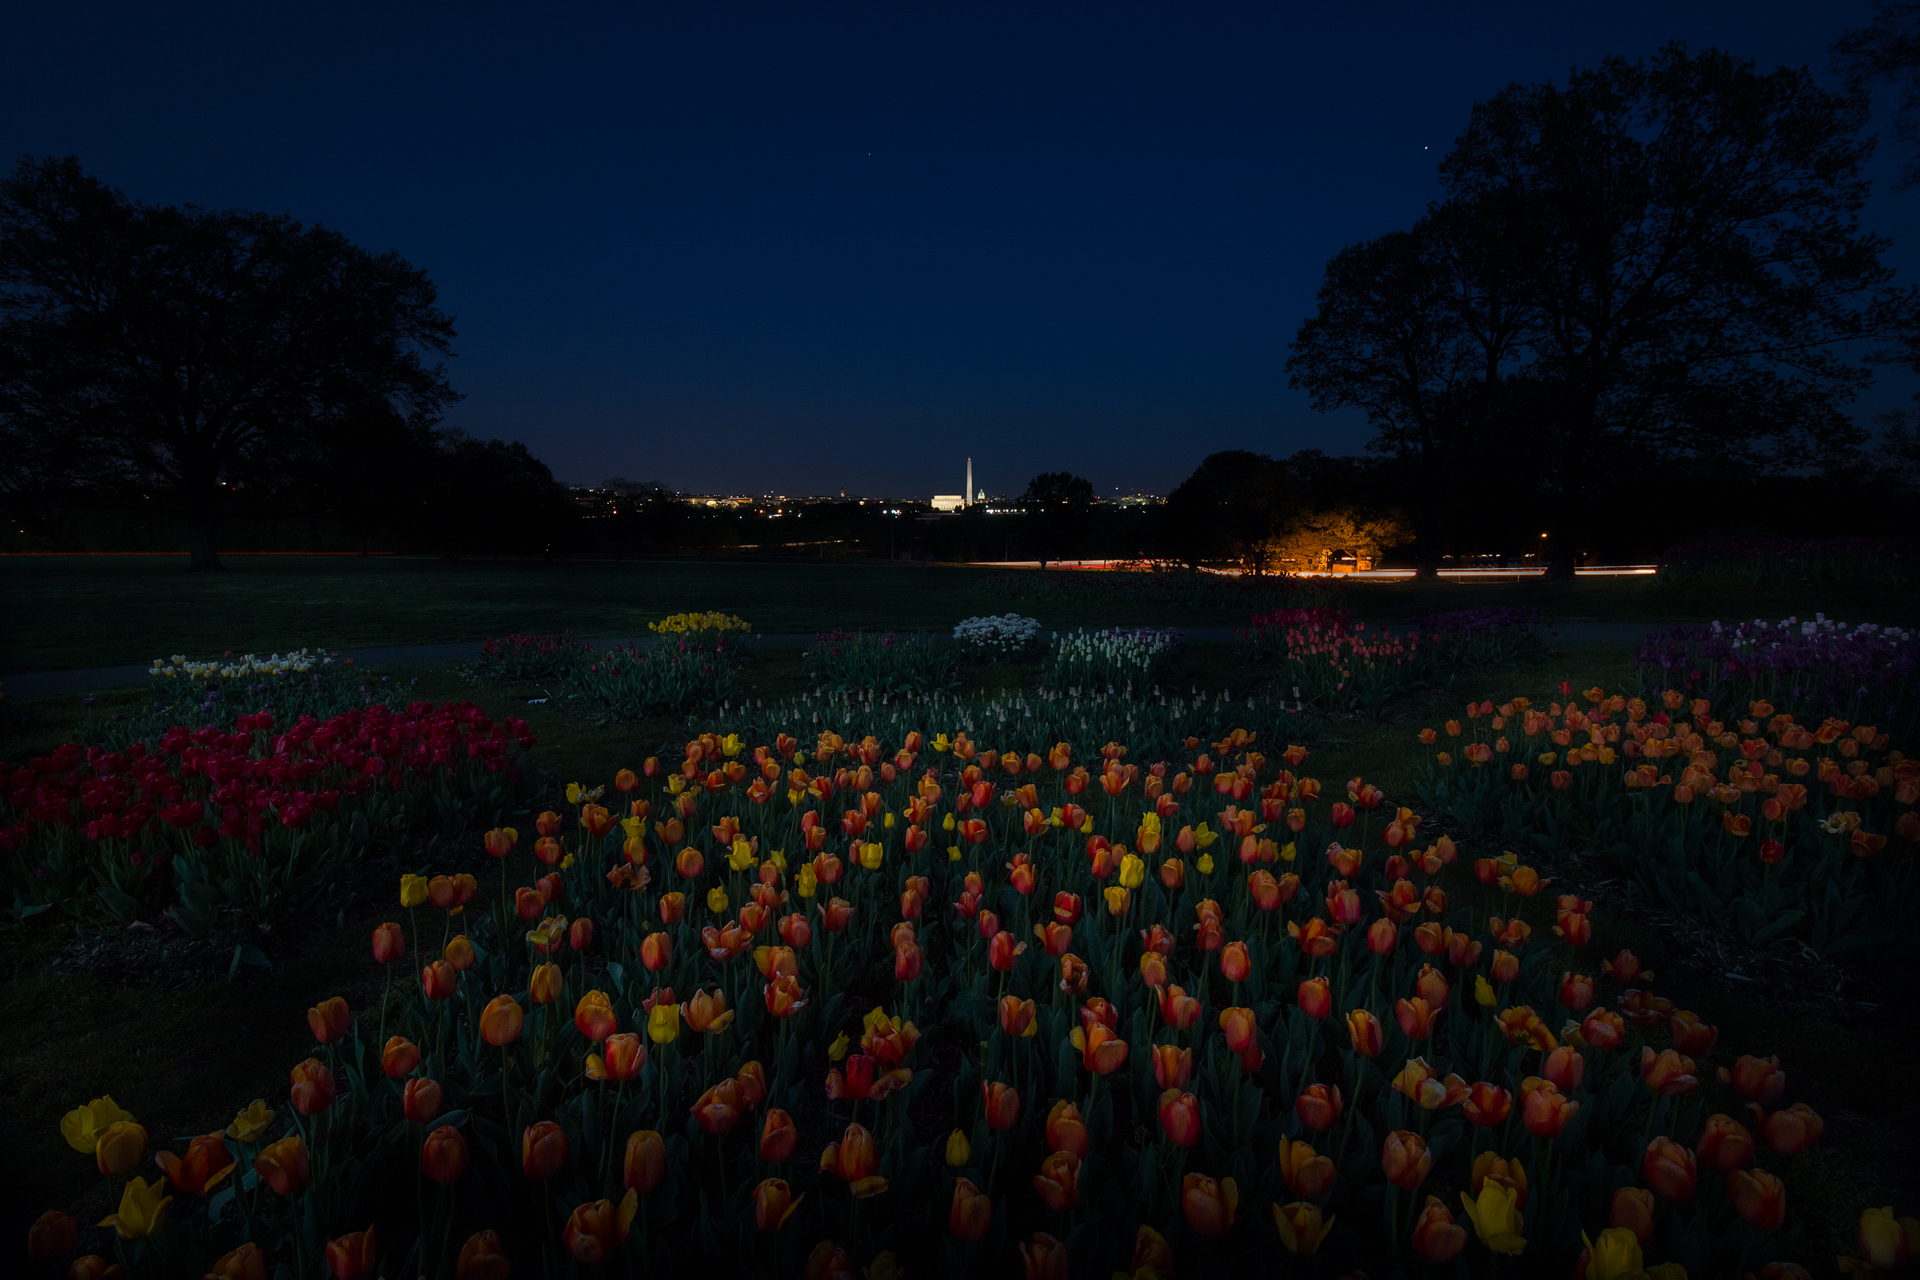 Carillon at Twilight – A view of the monuments while the flowers were in bloom{&nbsp;}(Image: Zack Lewkowicz)<p></p>